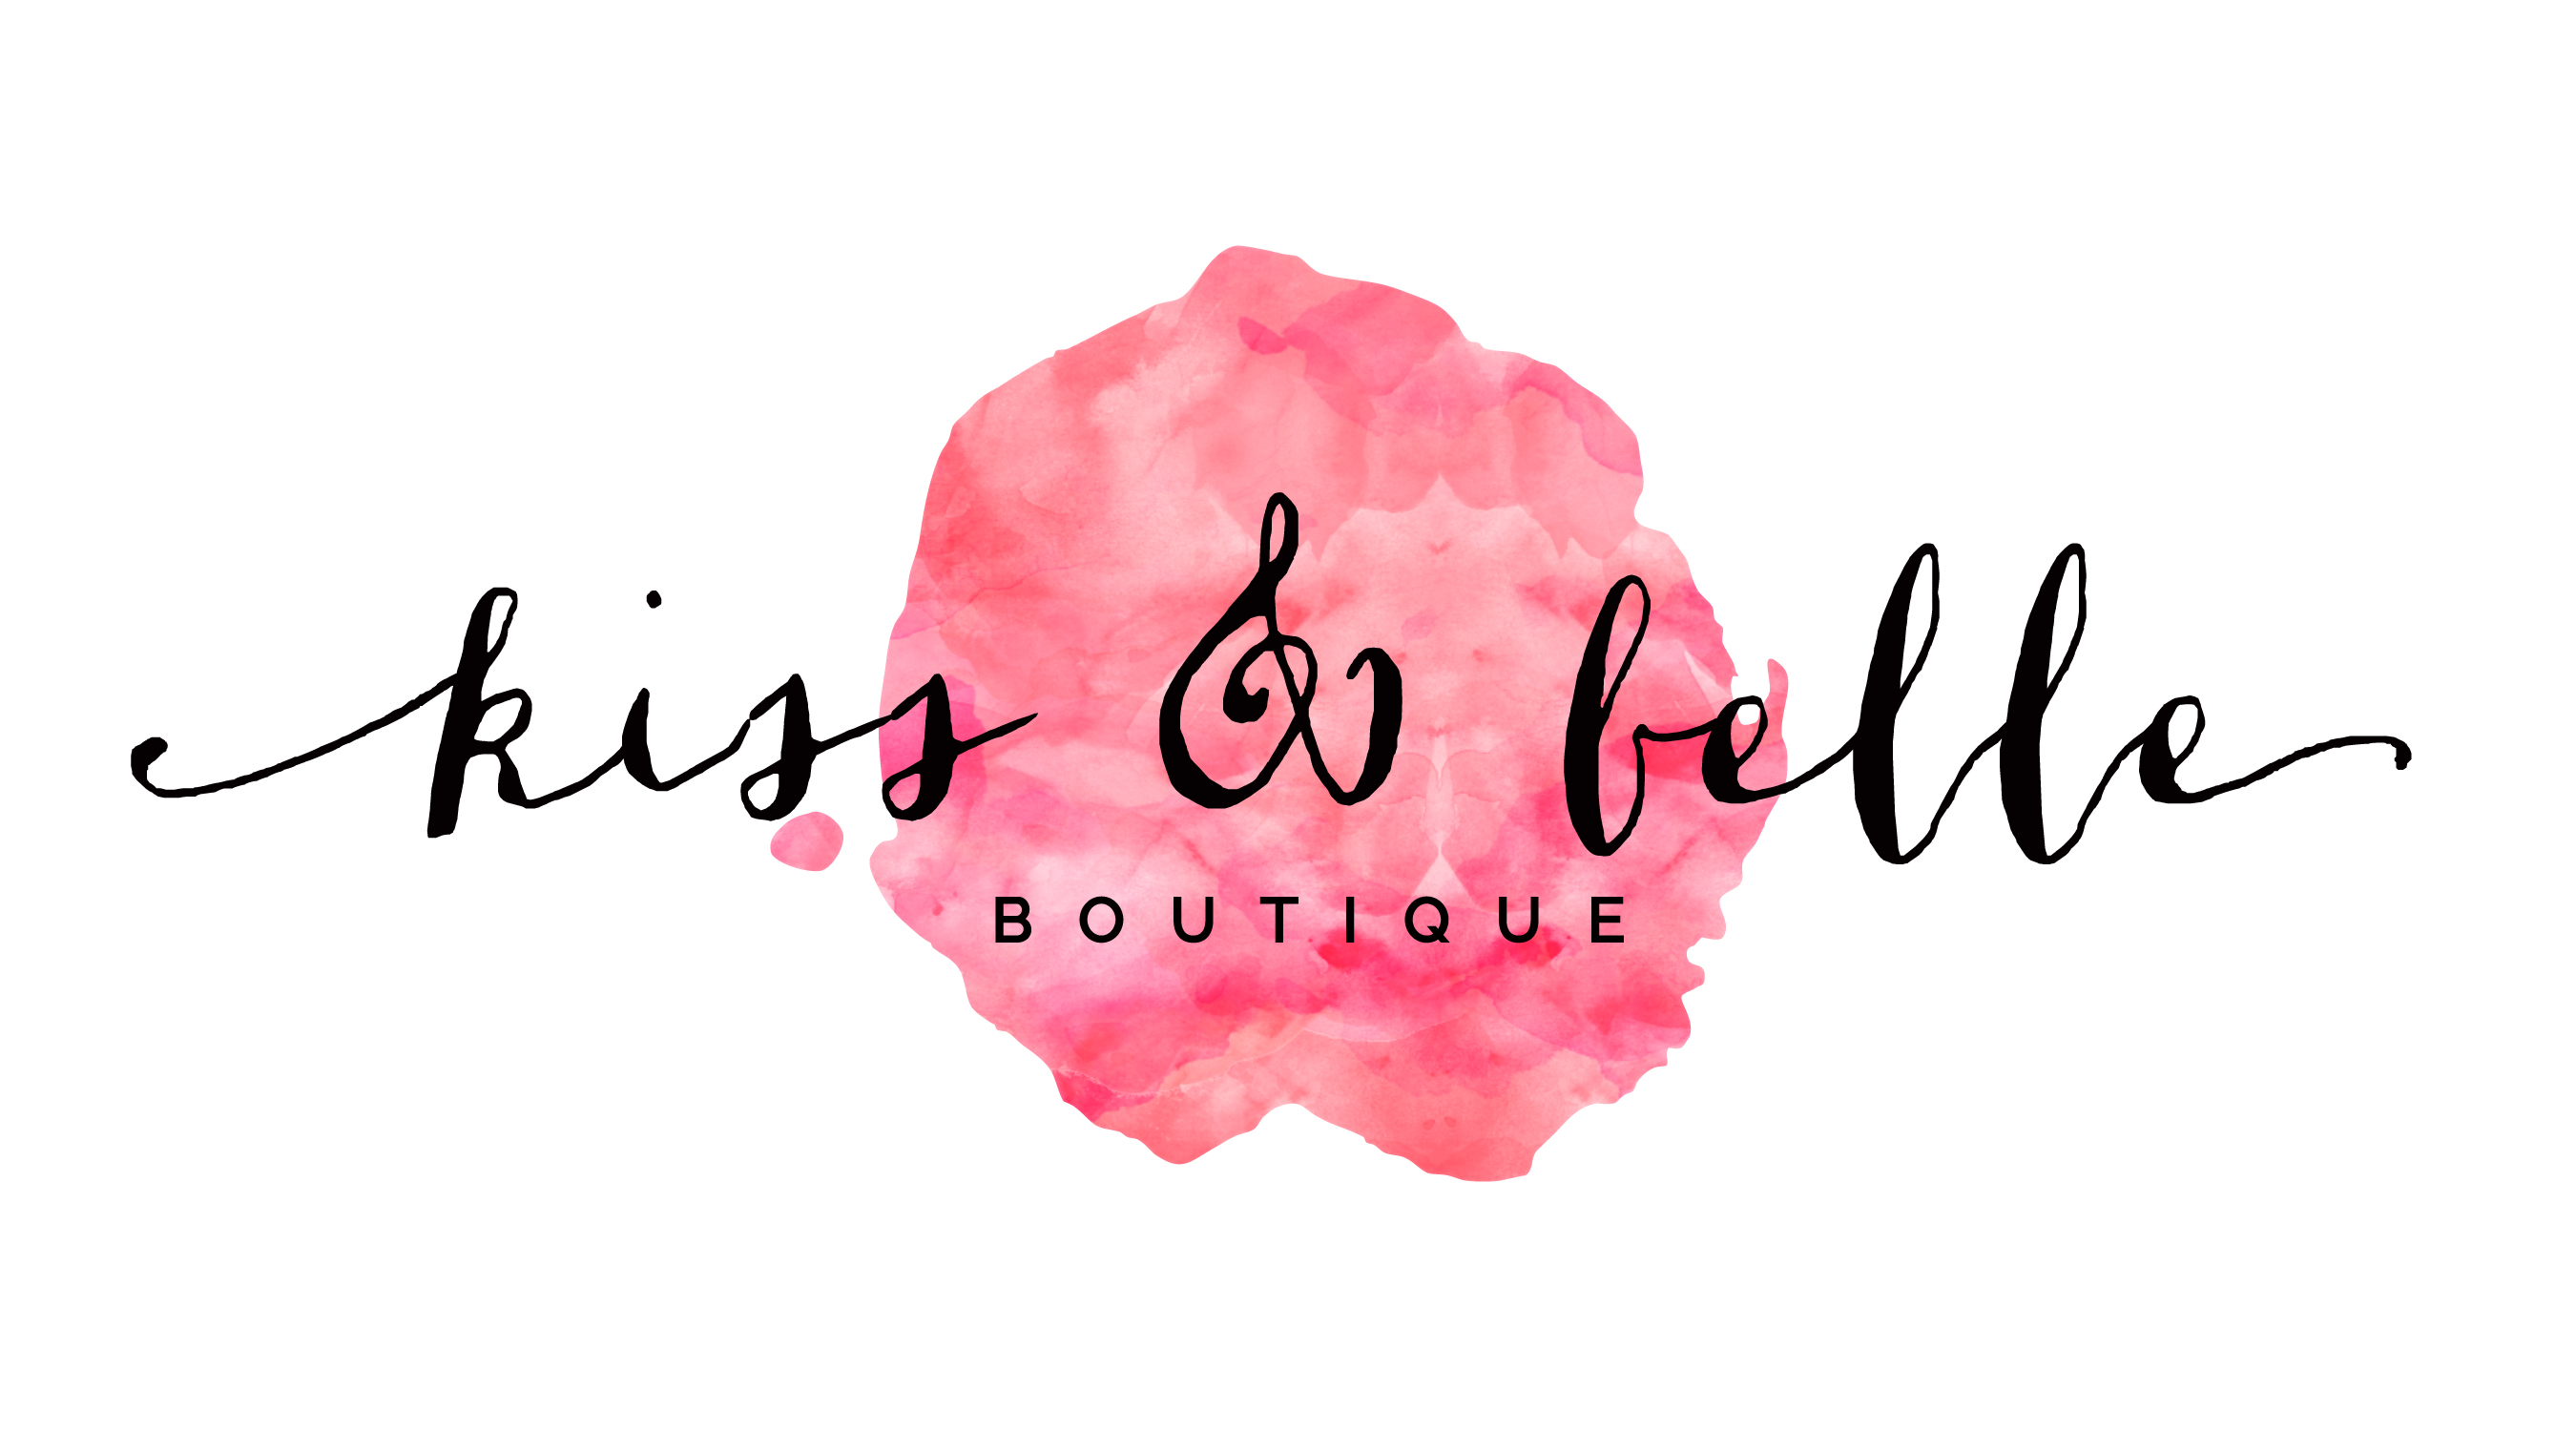 Kiss and Belle Boutique <3